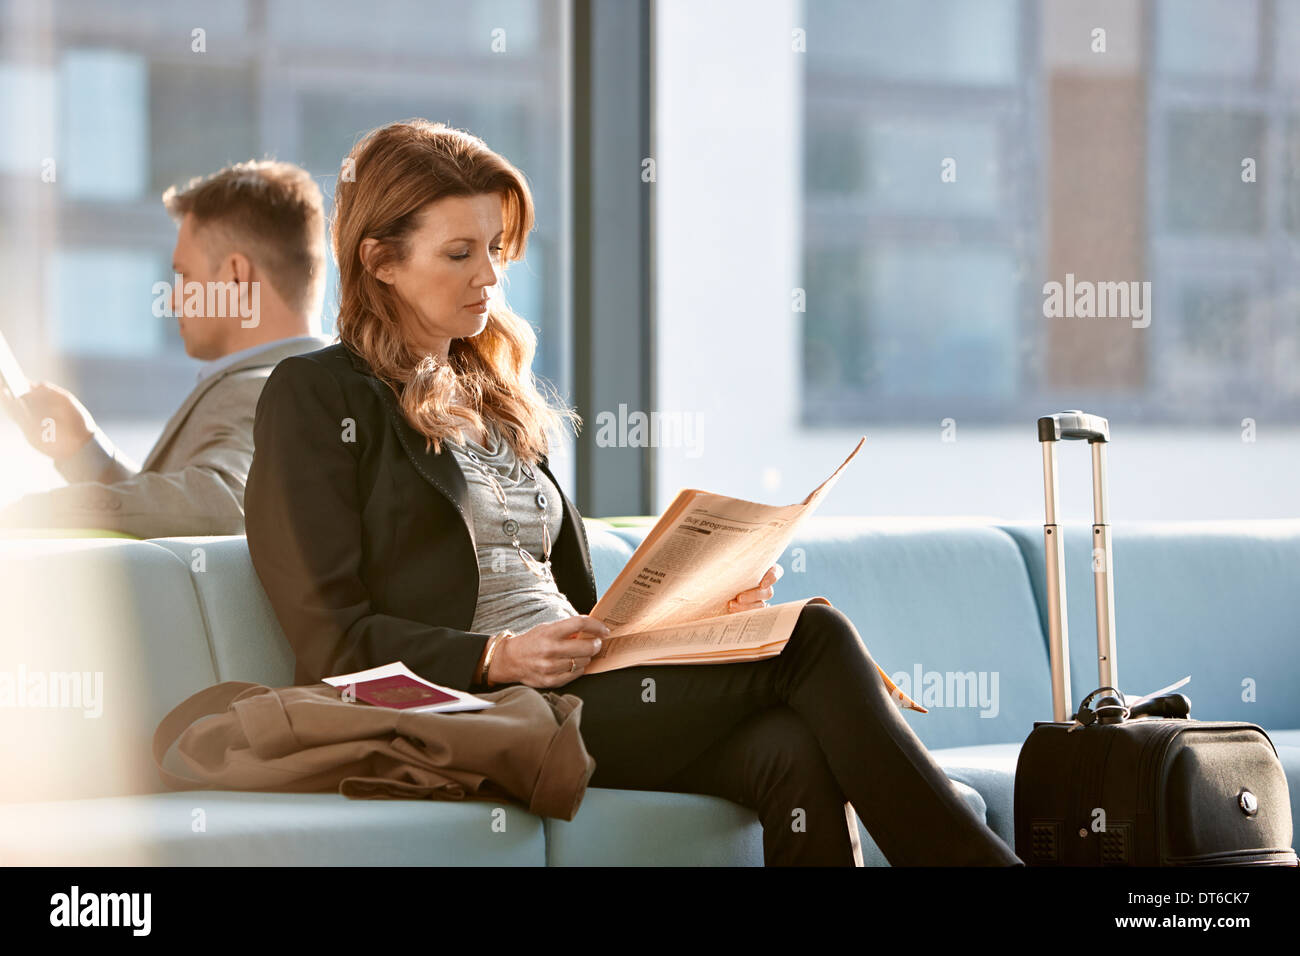 Businesswoman in departure lounge Photo Stock